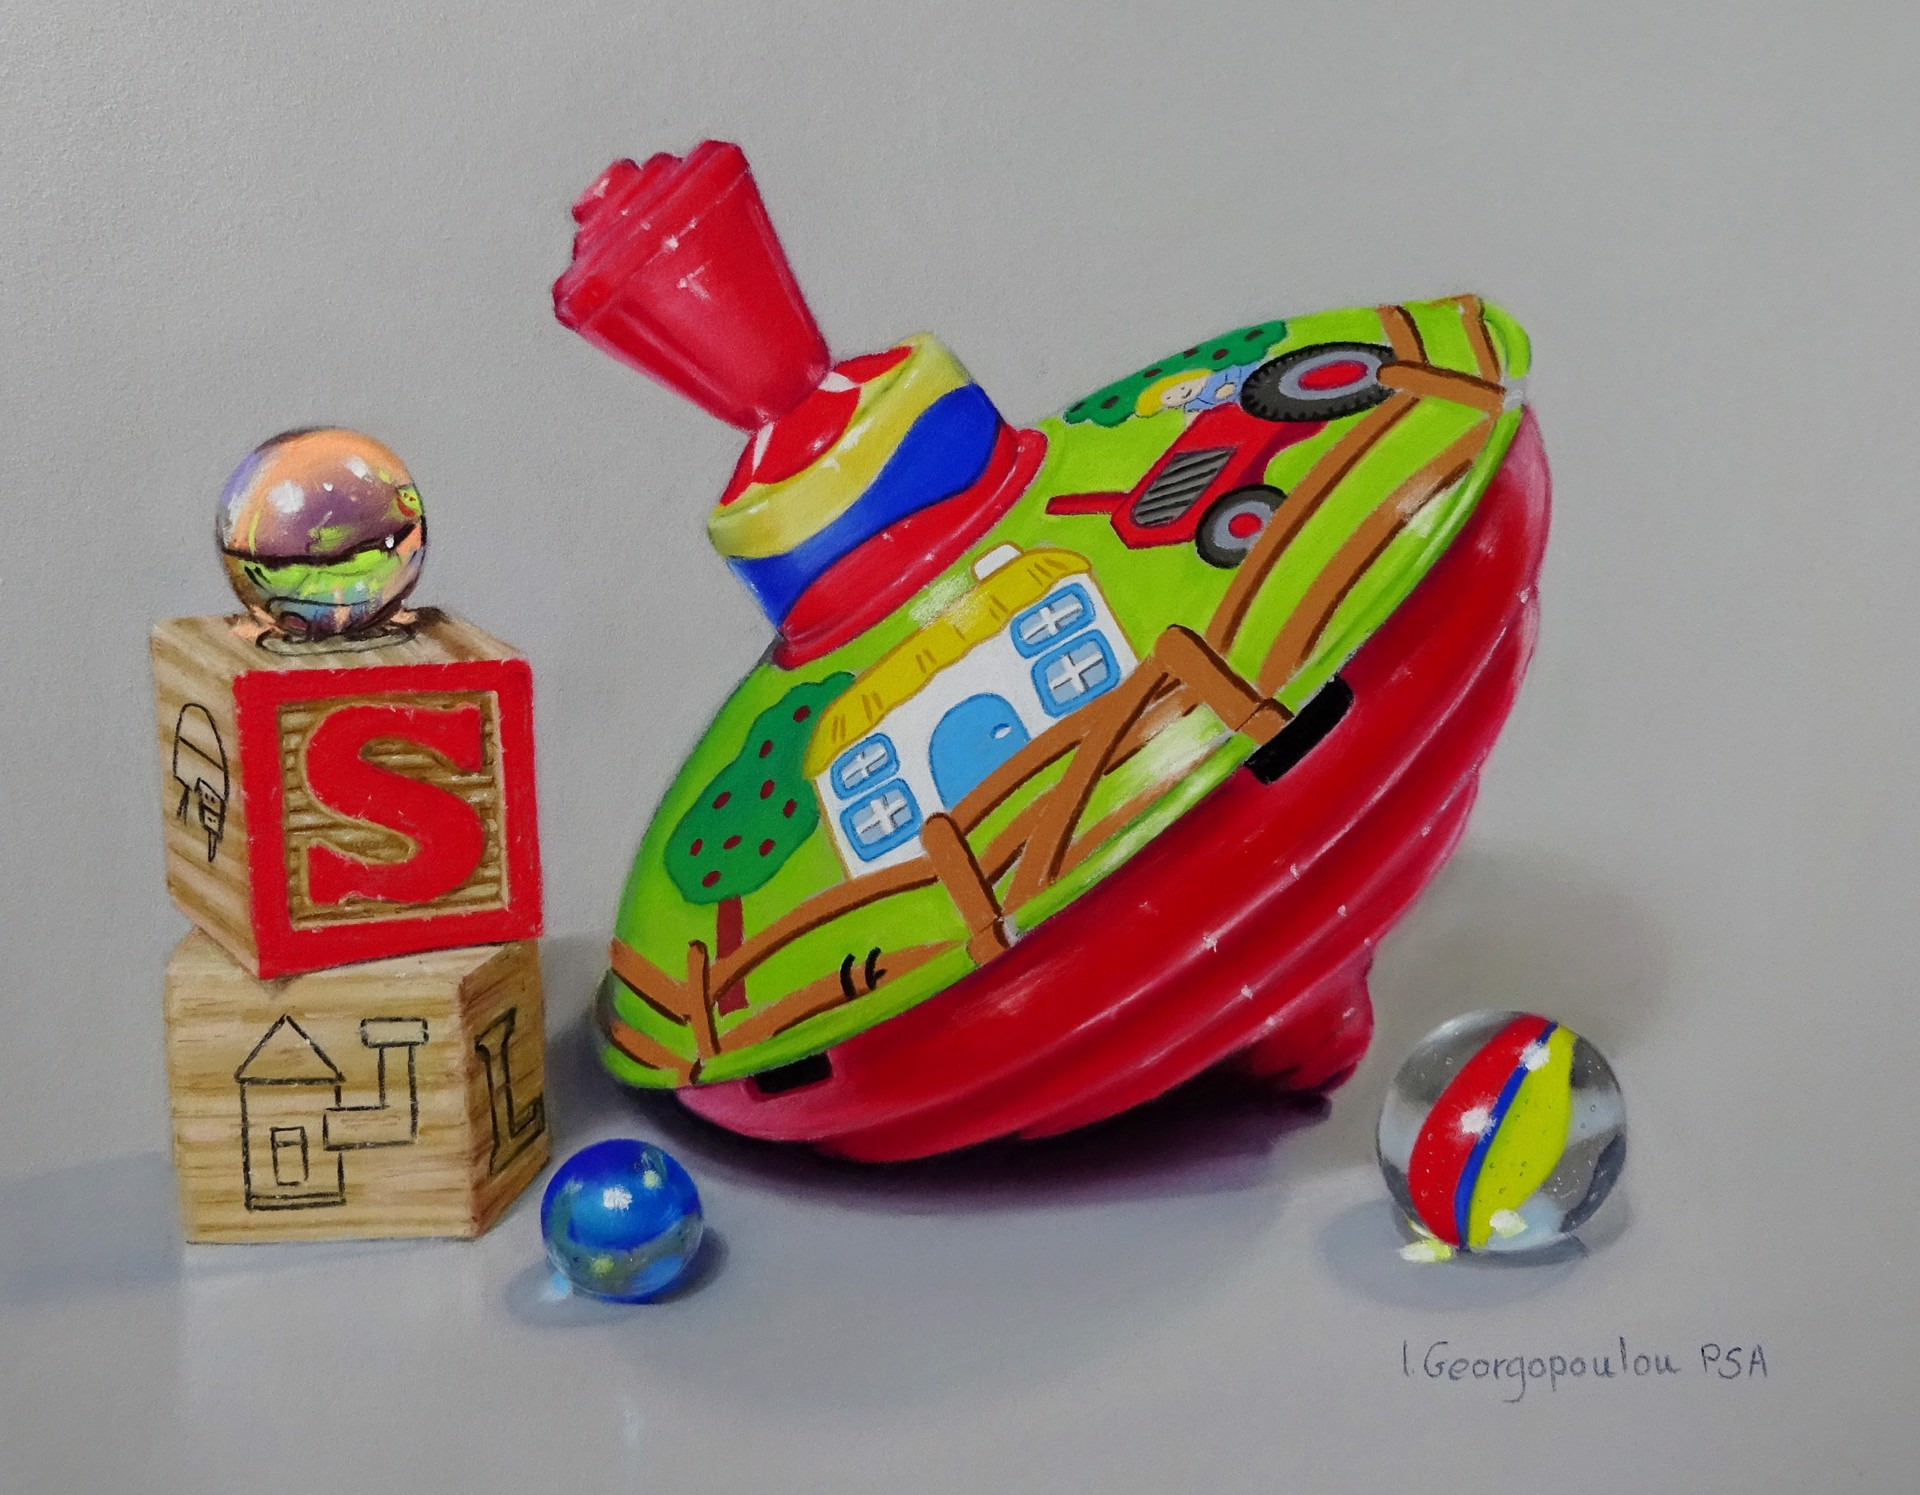 S is for Spinning Top by Irene Georgopoulou